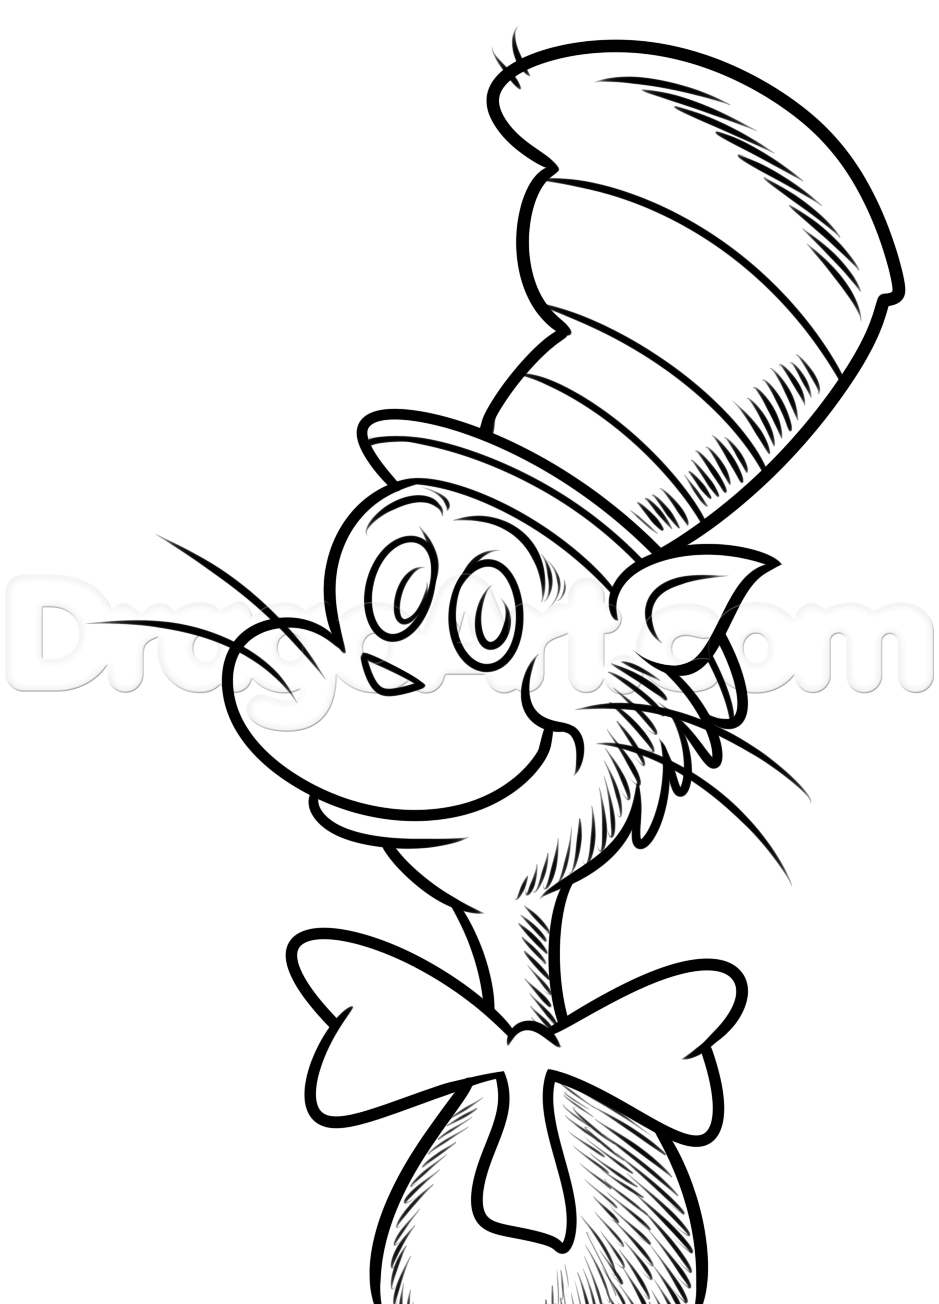 Cat in the hat clipart line drawing graphic stock Hat Line Drawing at PaintingValley.com | Explore collection of Hat ... graphic stock